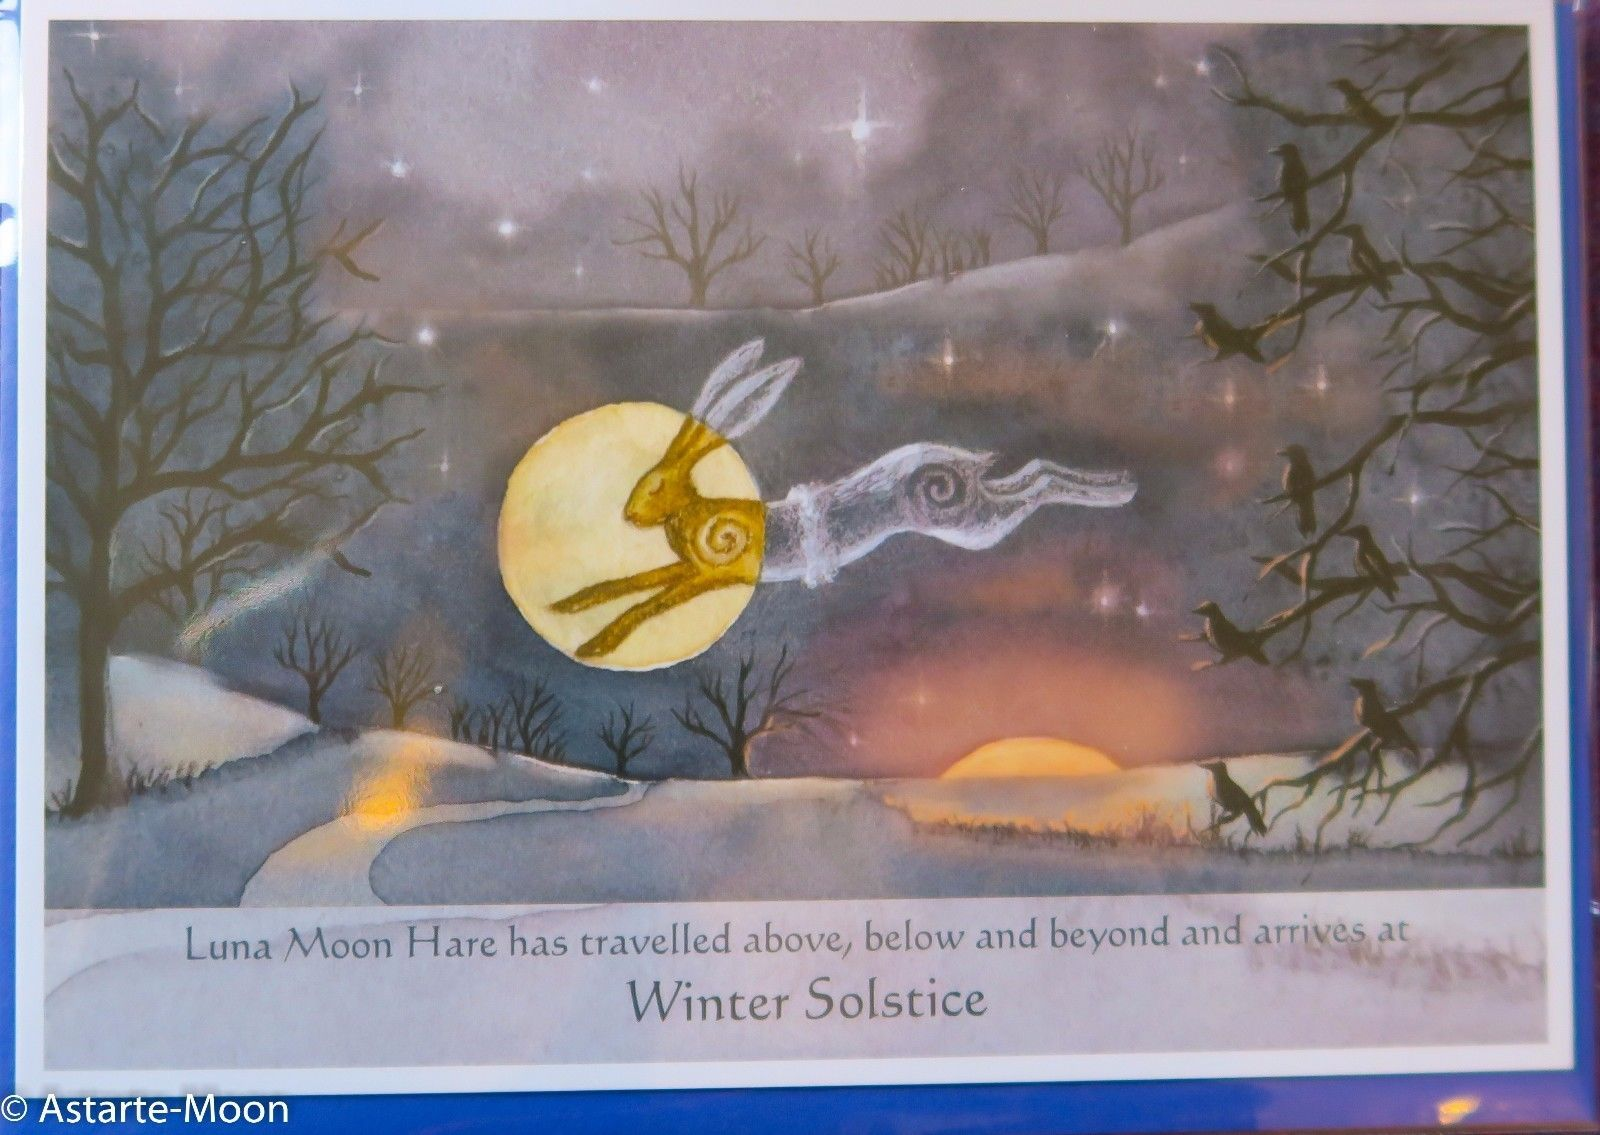 Wendy Andrew yule christmas dec birthday card pagan wife daughter goddess hare